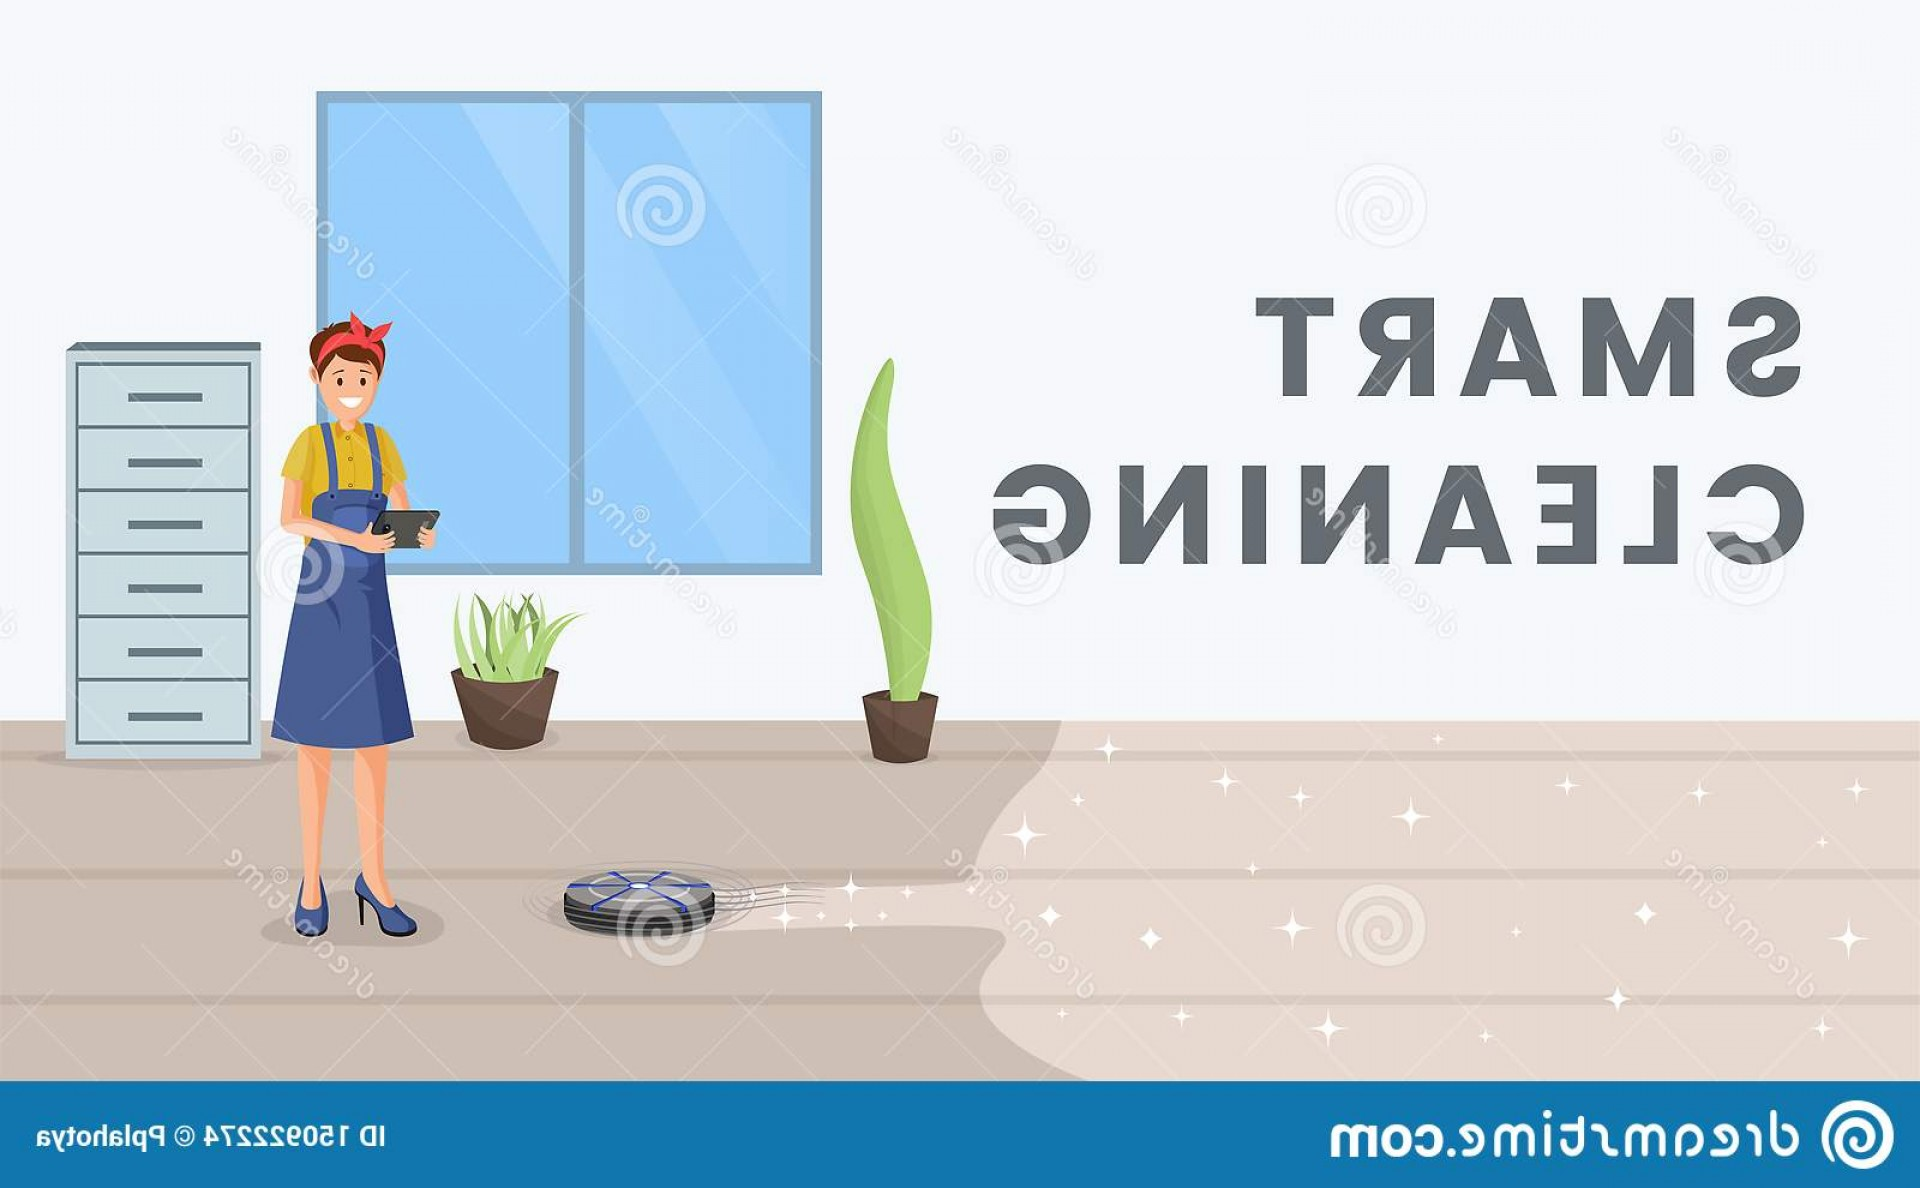 Vector Vacuum Technologies: Smart Cleaning Flat Vector Banner Template Housewife Using Robot Vacuum Cleaner Automatic Household Appliance Cartoon Character Image